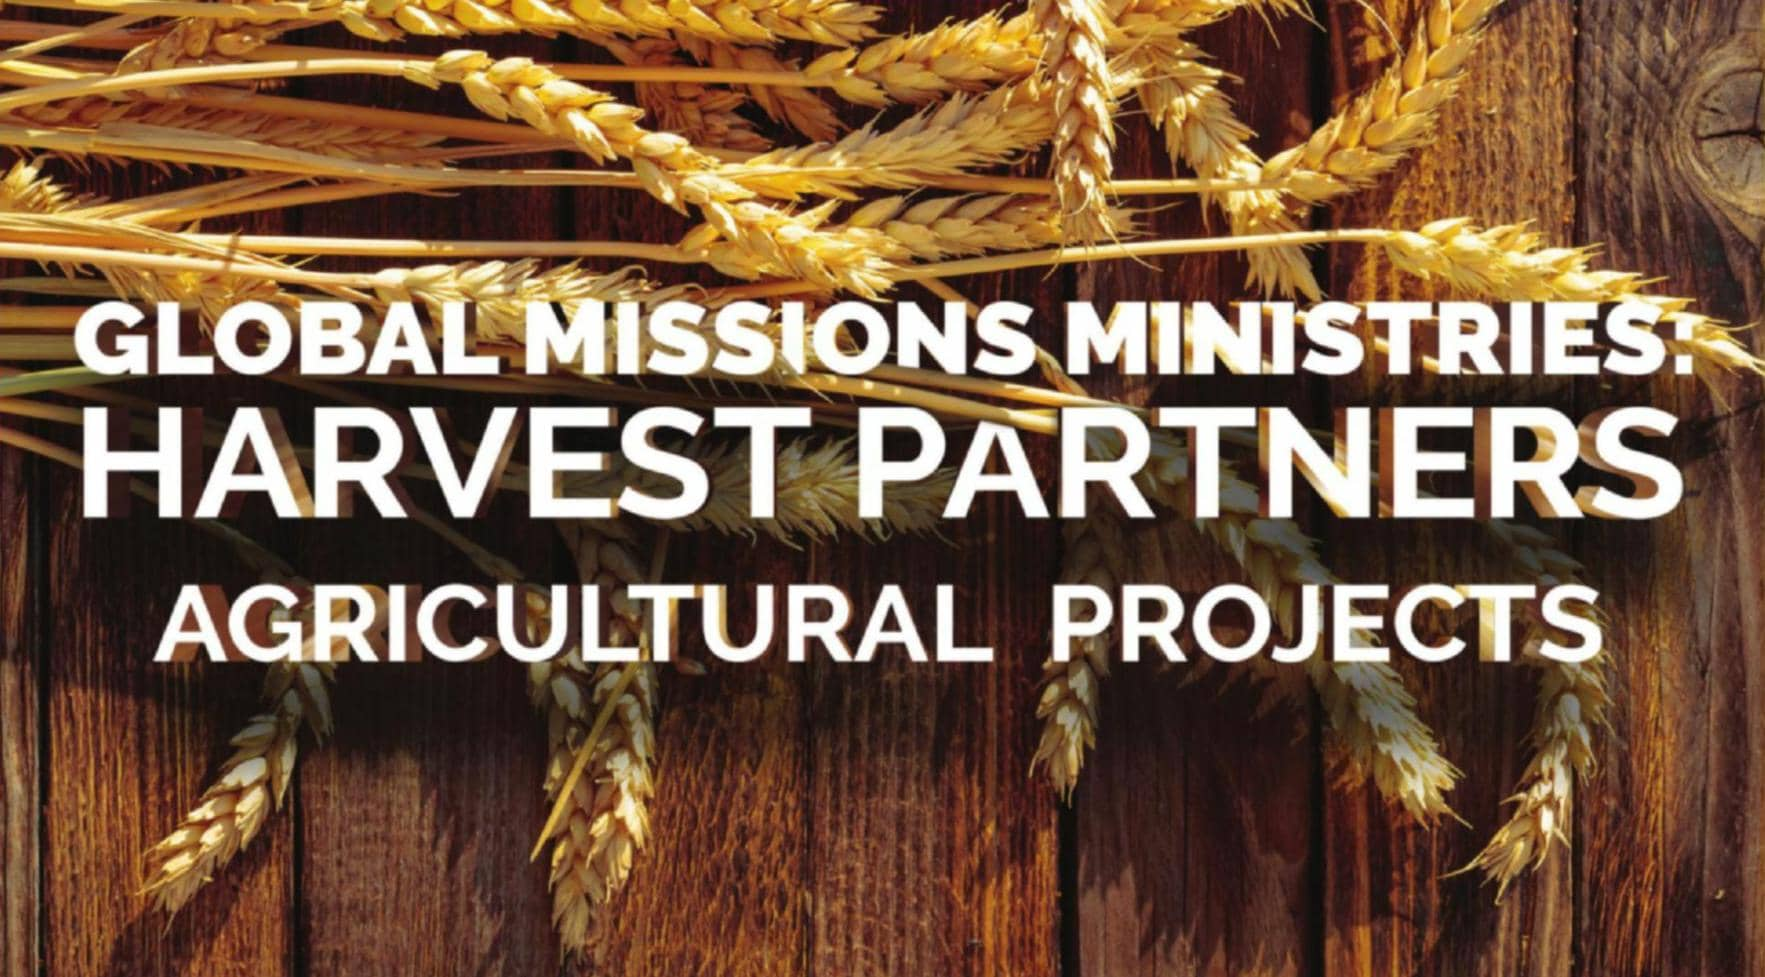 GLOBAL MISSIONS MINISTERIES: HARVEST PARTNERS AGRICULTURAL PROJECTS